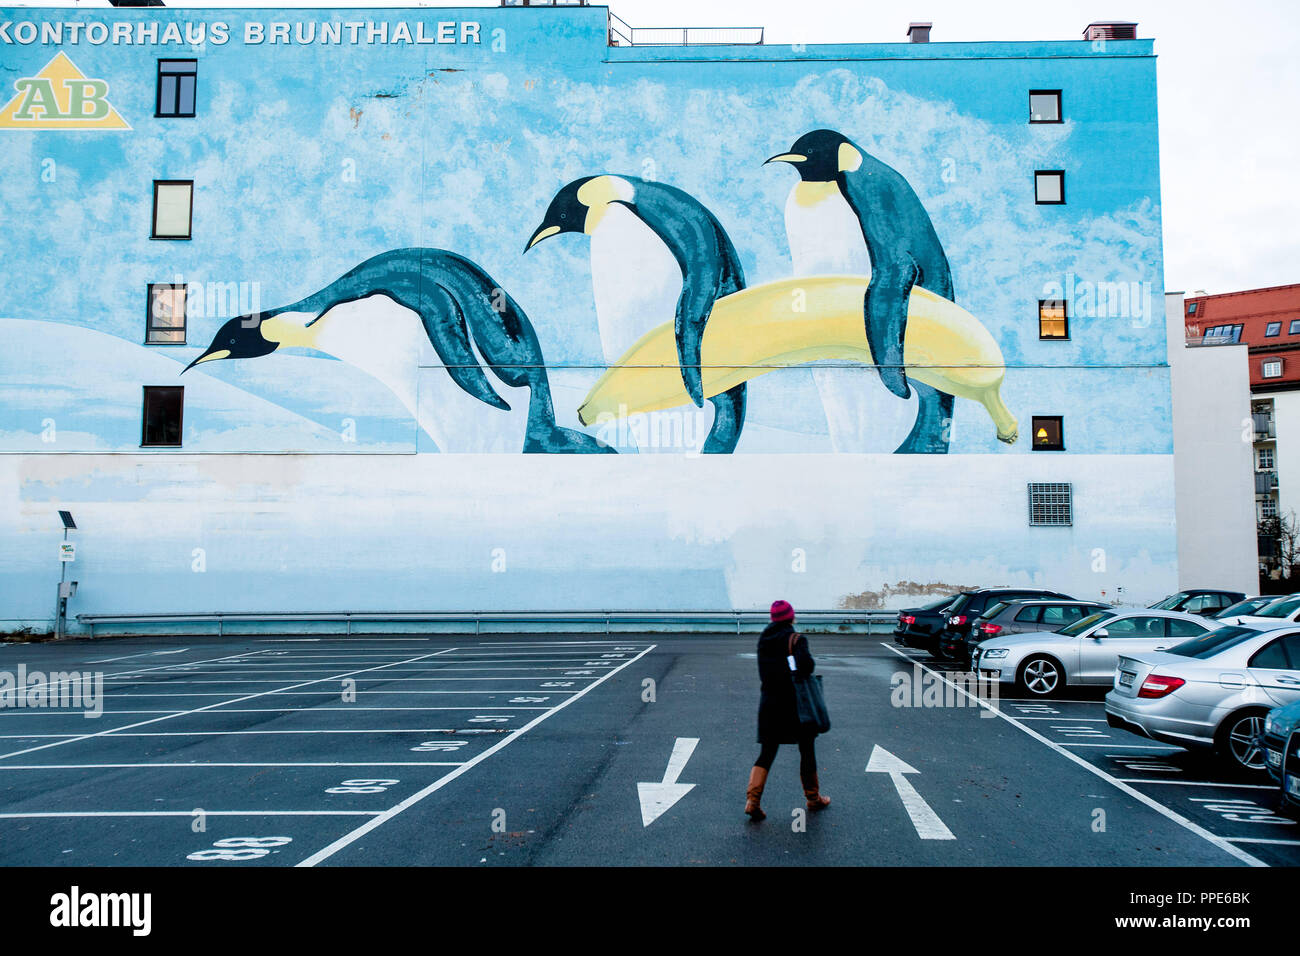 Wall painting on the facade of the Kontorhaus Brunthaler at Gotzinger Platz in Sendling as an advertising for keep cool icetrade GmbH. - Stock Image